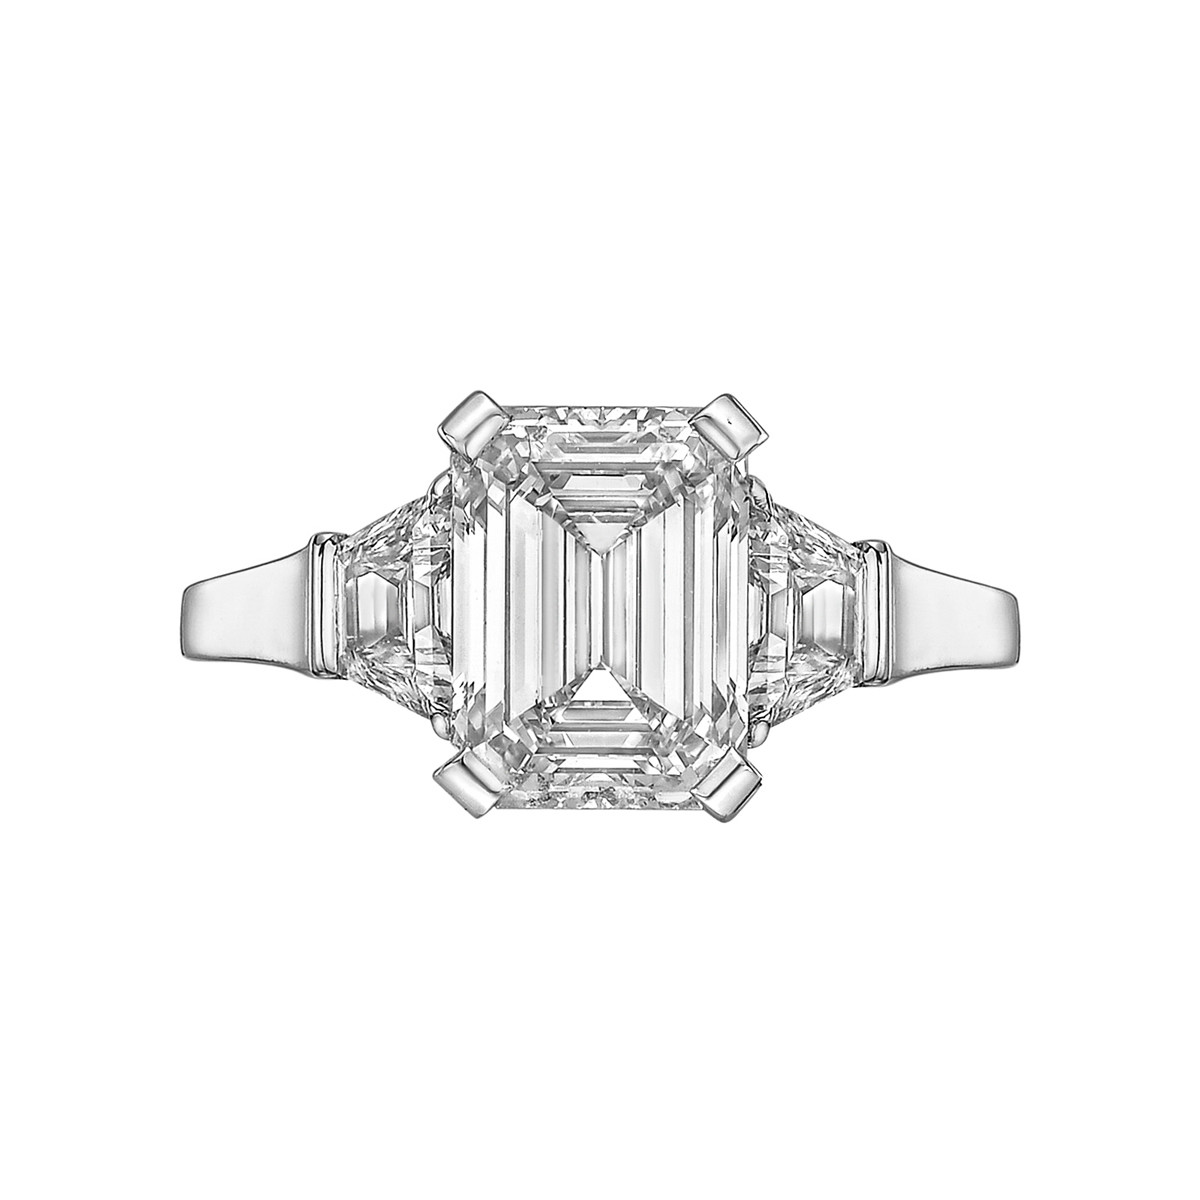 3.01 Carat Emerald-Cut Diamond Ring